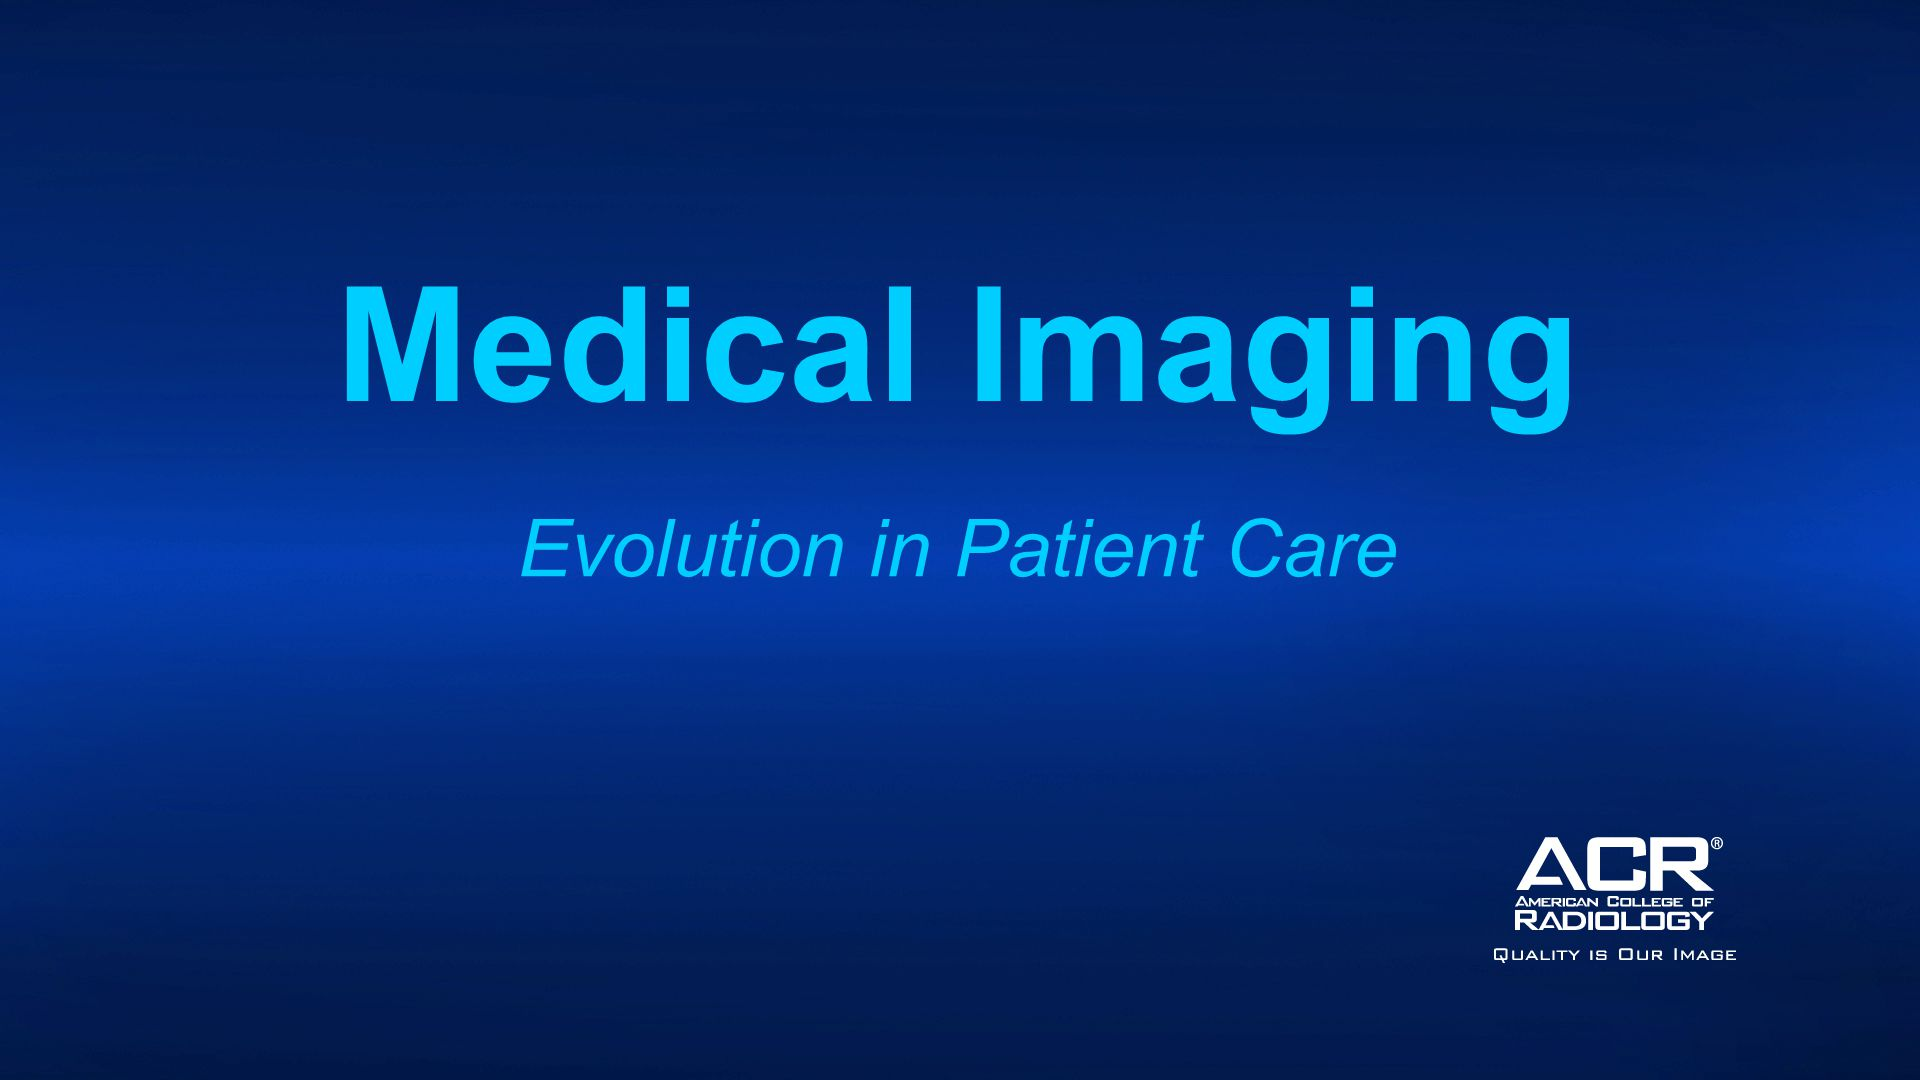 Medical Imaging Evolution in Patient Care